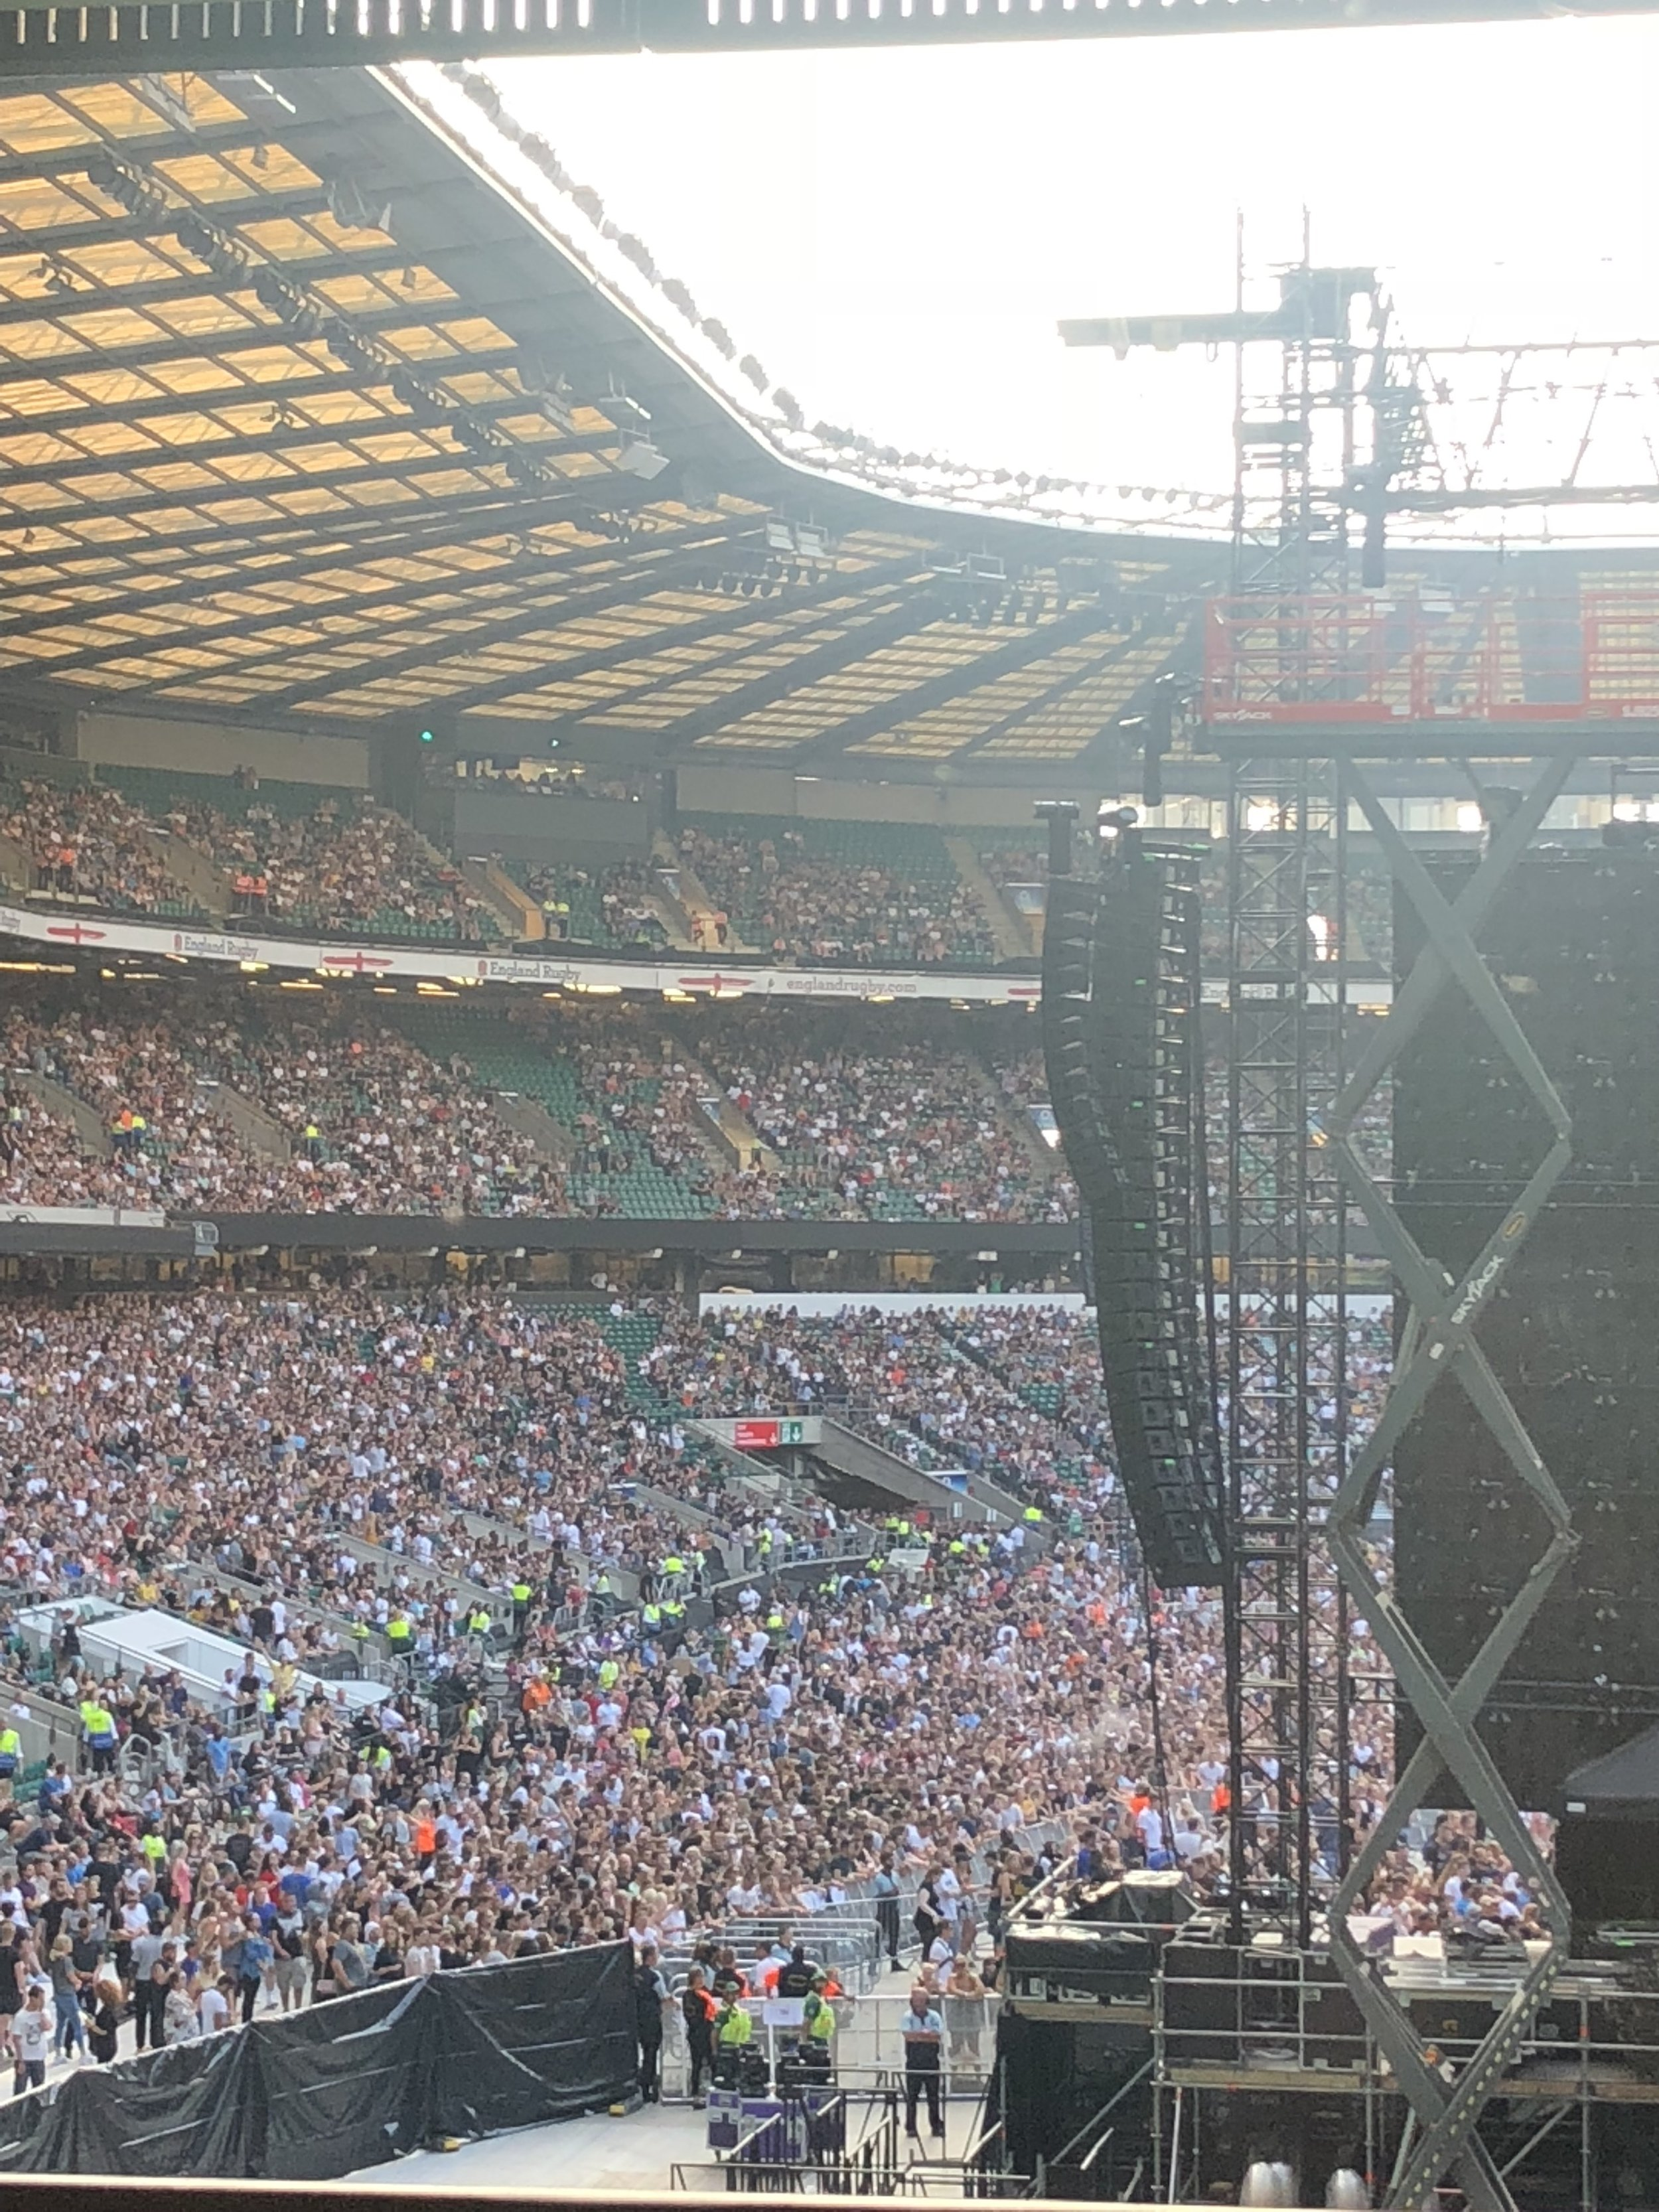 View from backstage before performing with Eminem At Twickenham